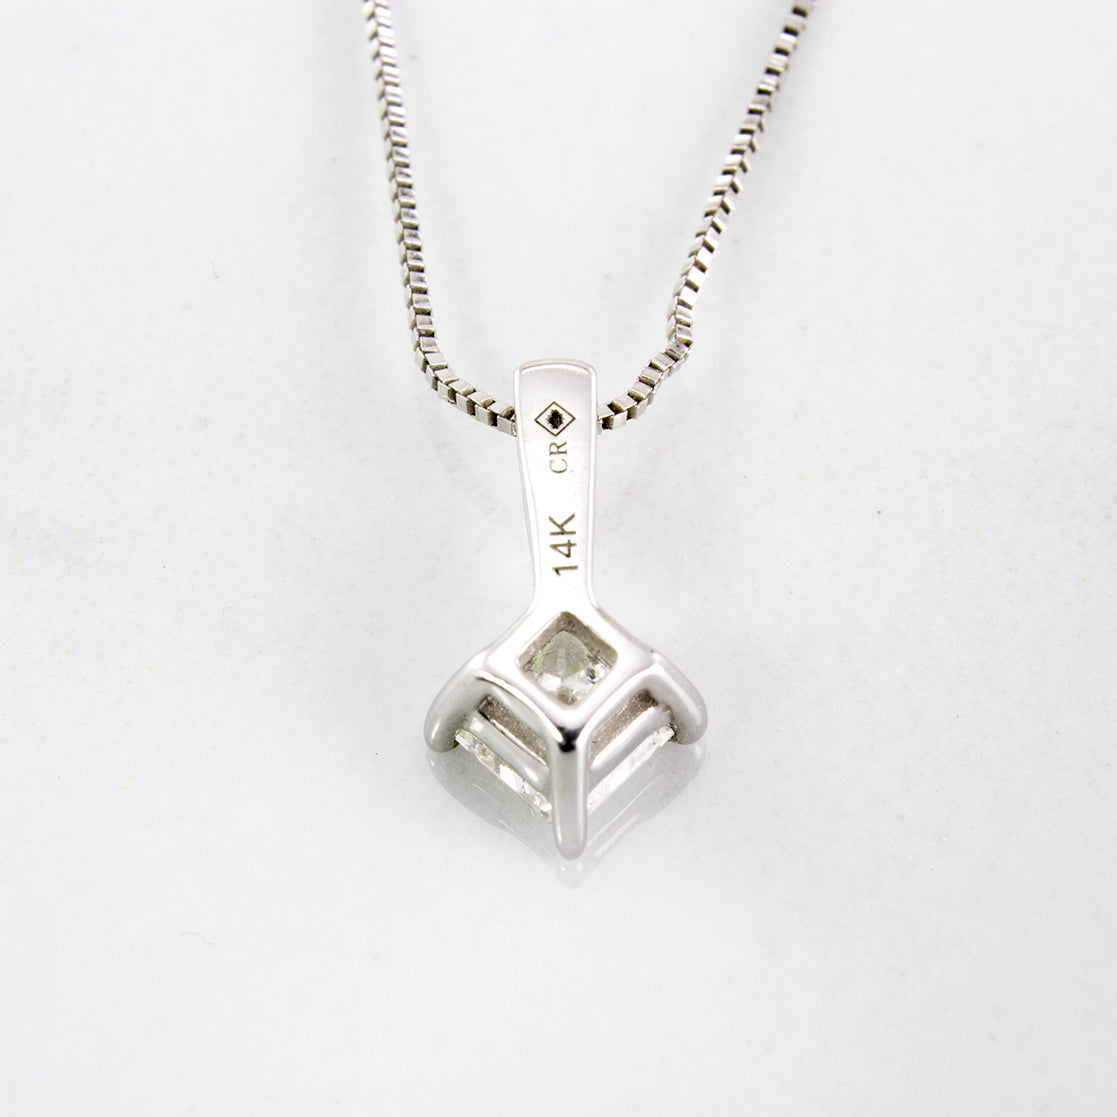 Princess Cut Diamond Necklace | 0.25 ctw | SZ 20"